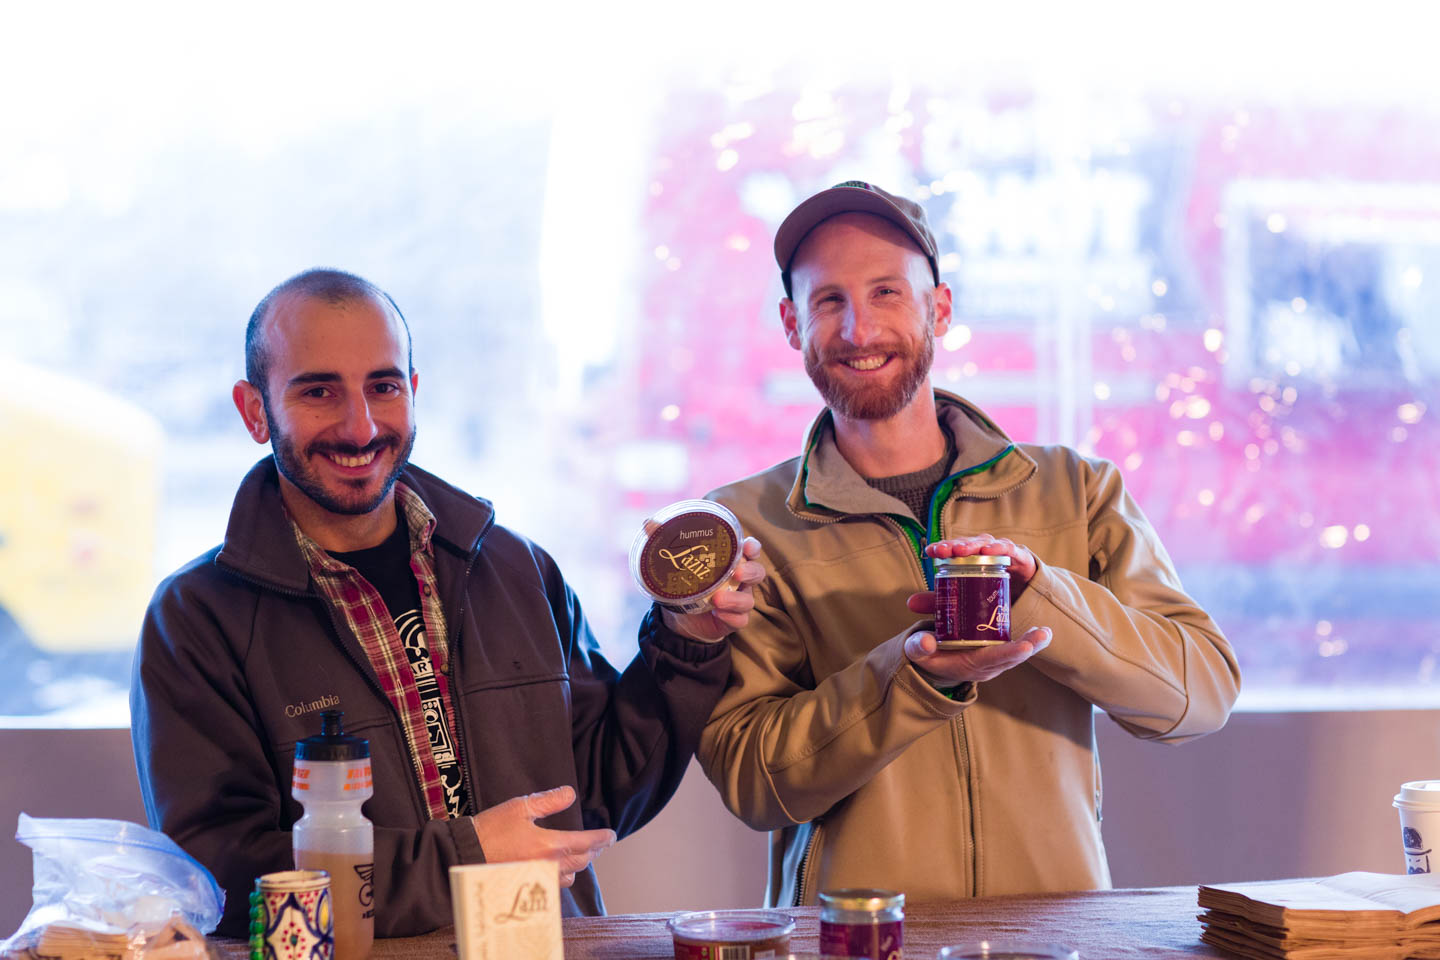 Derek and Moudi sell their Laziz wares at the Winter Salt Lake City Farmers Market